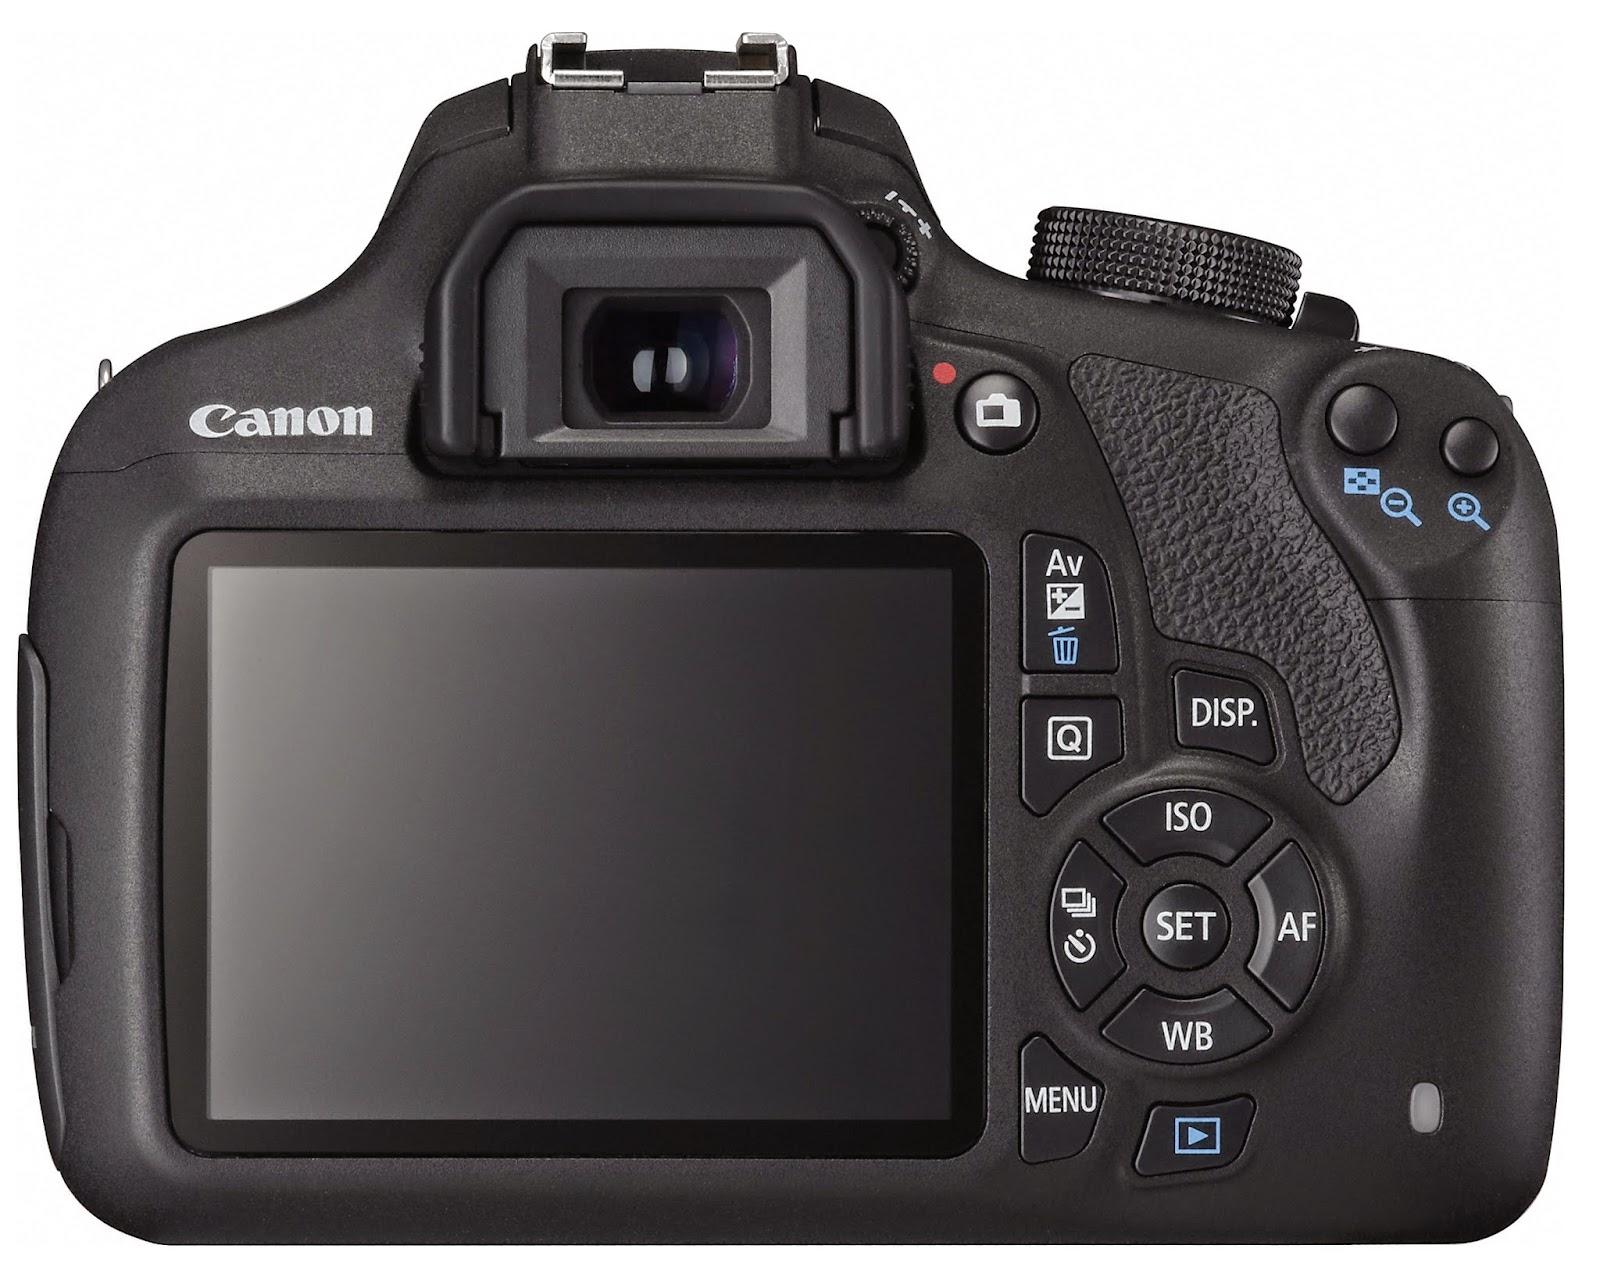 Canon EOS 1200D / Rebel T5: Links to professional / consumer reviews